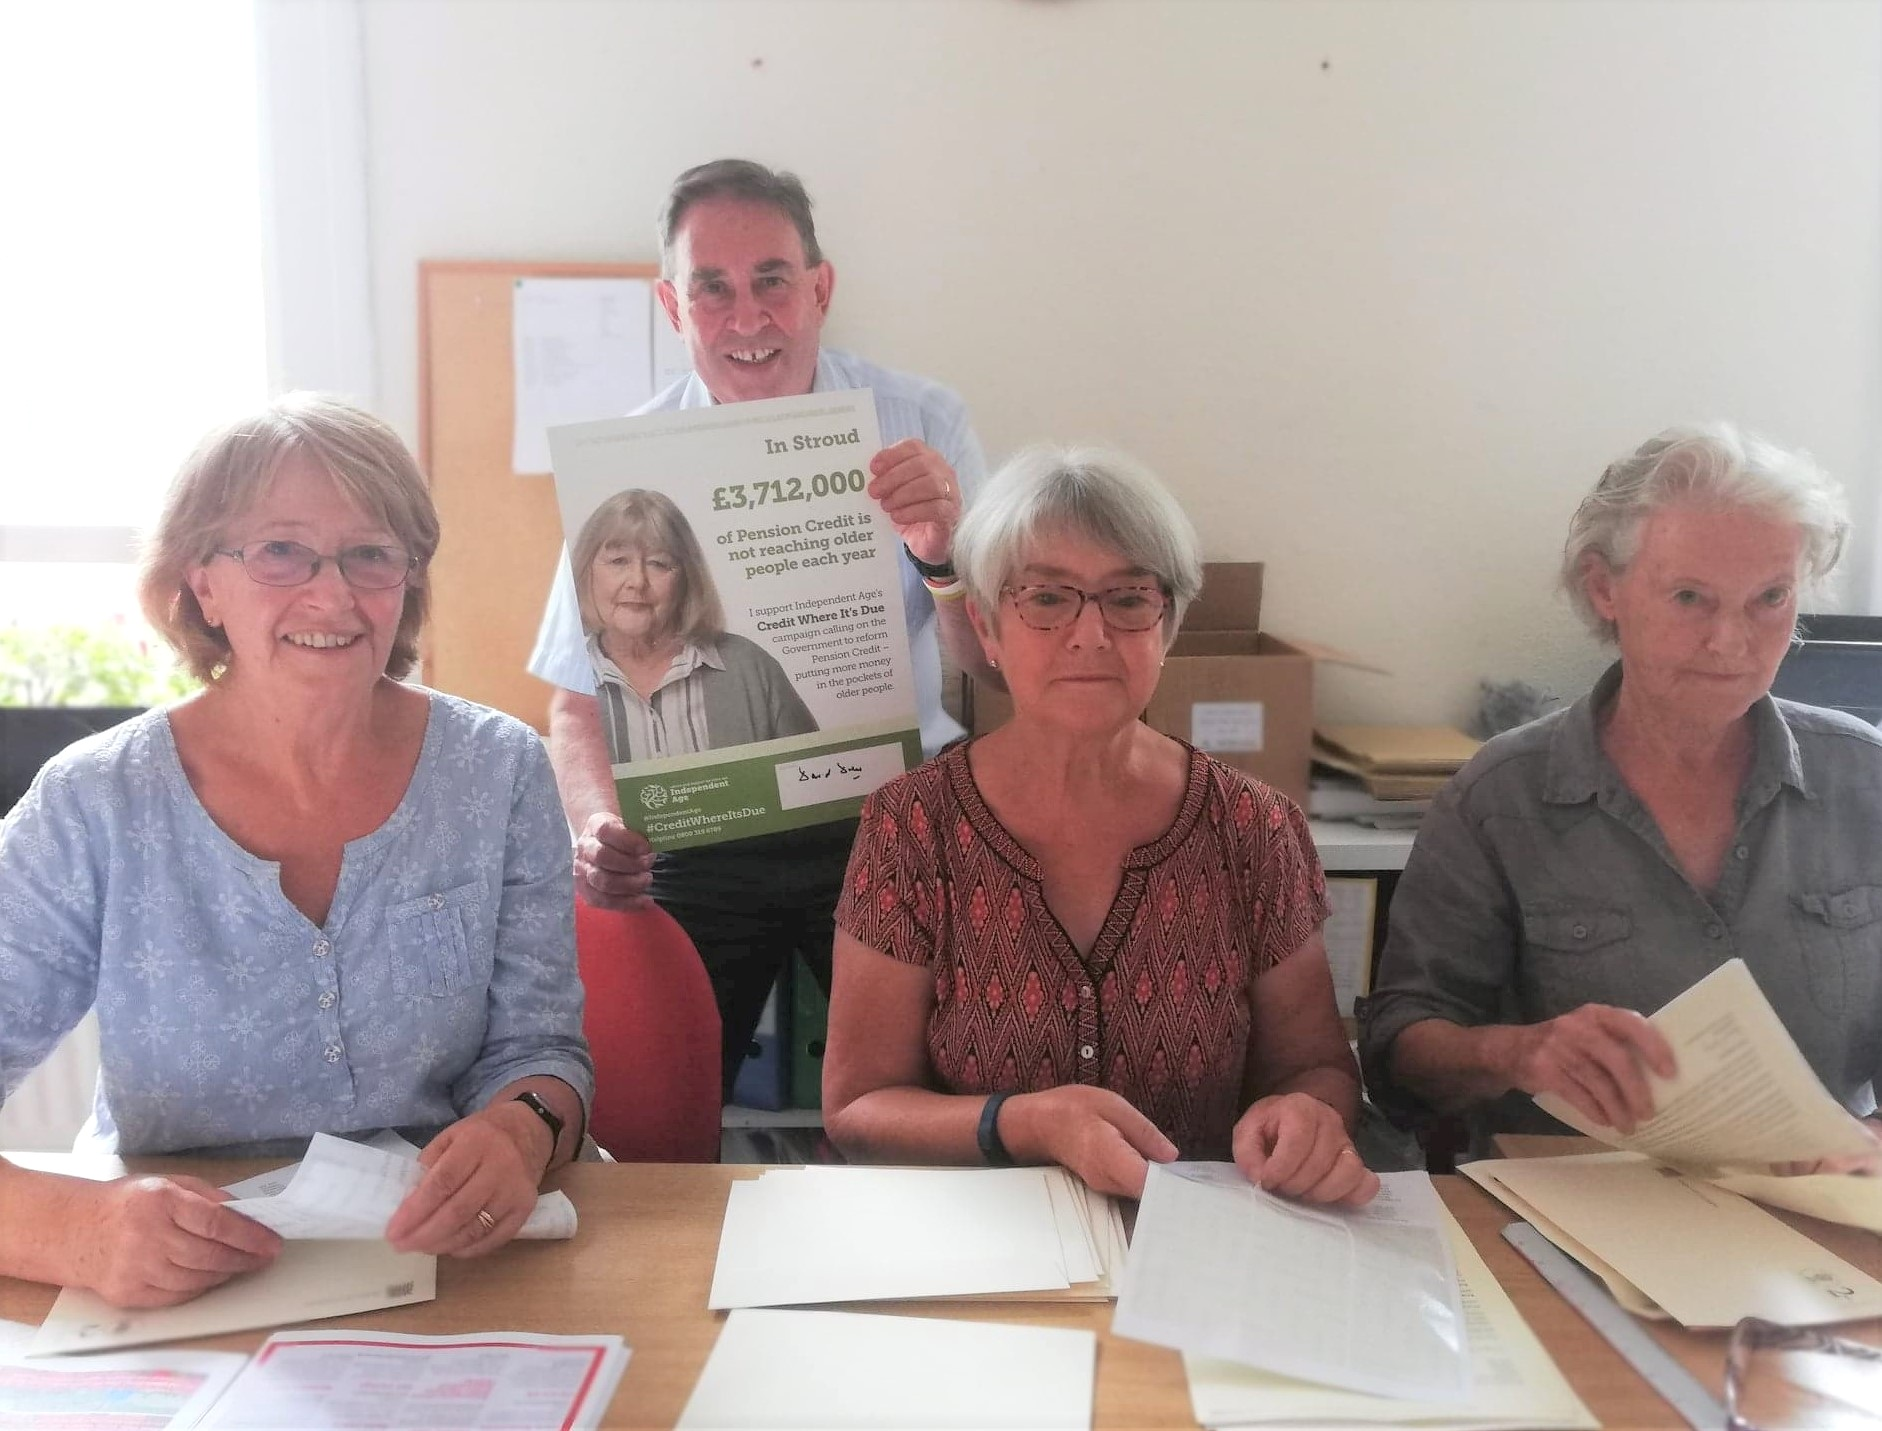 Volunteers have been hard at work this week, helping David Drew MP to reach 4,000 constituents